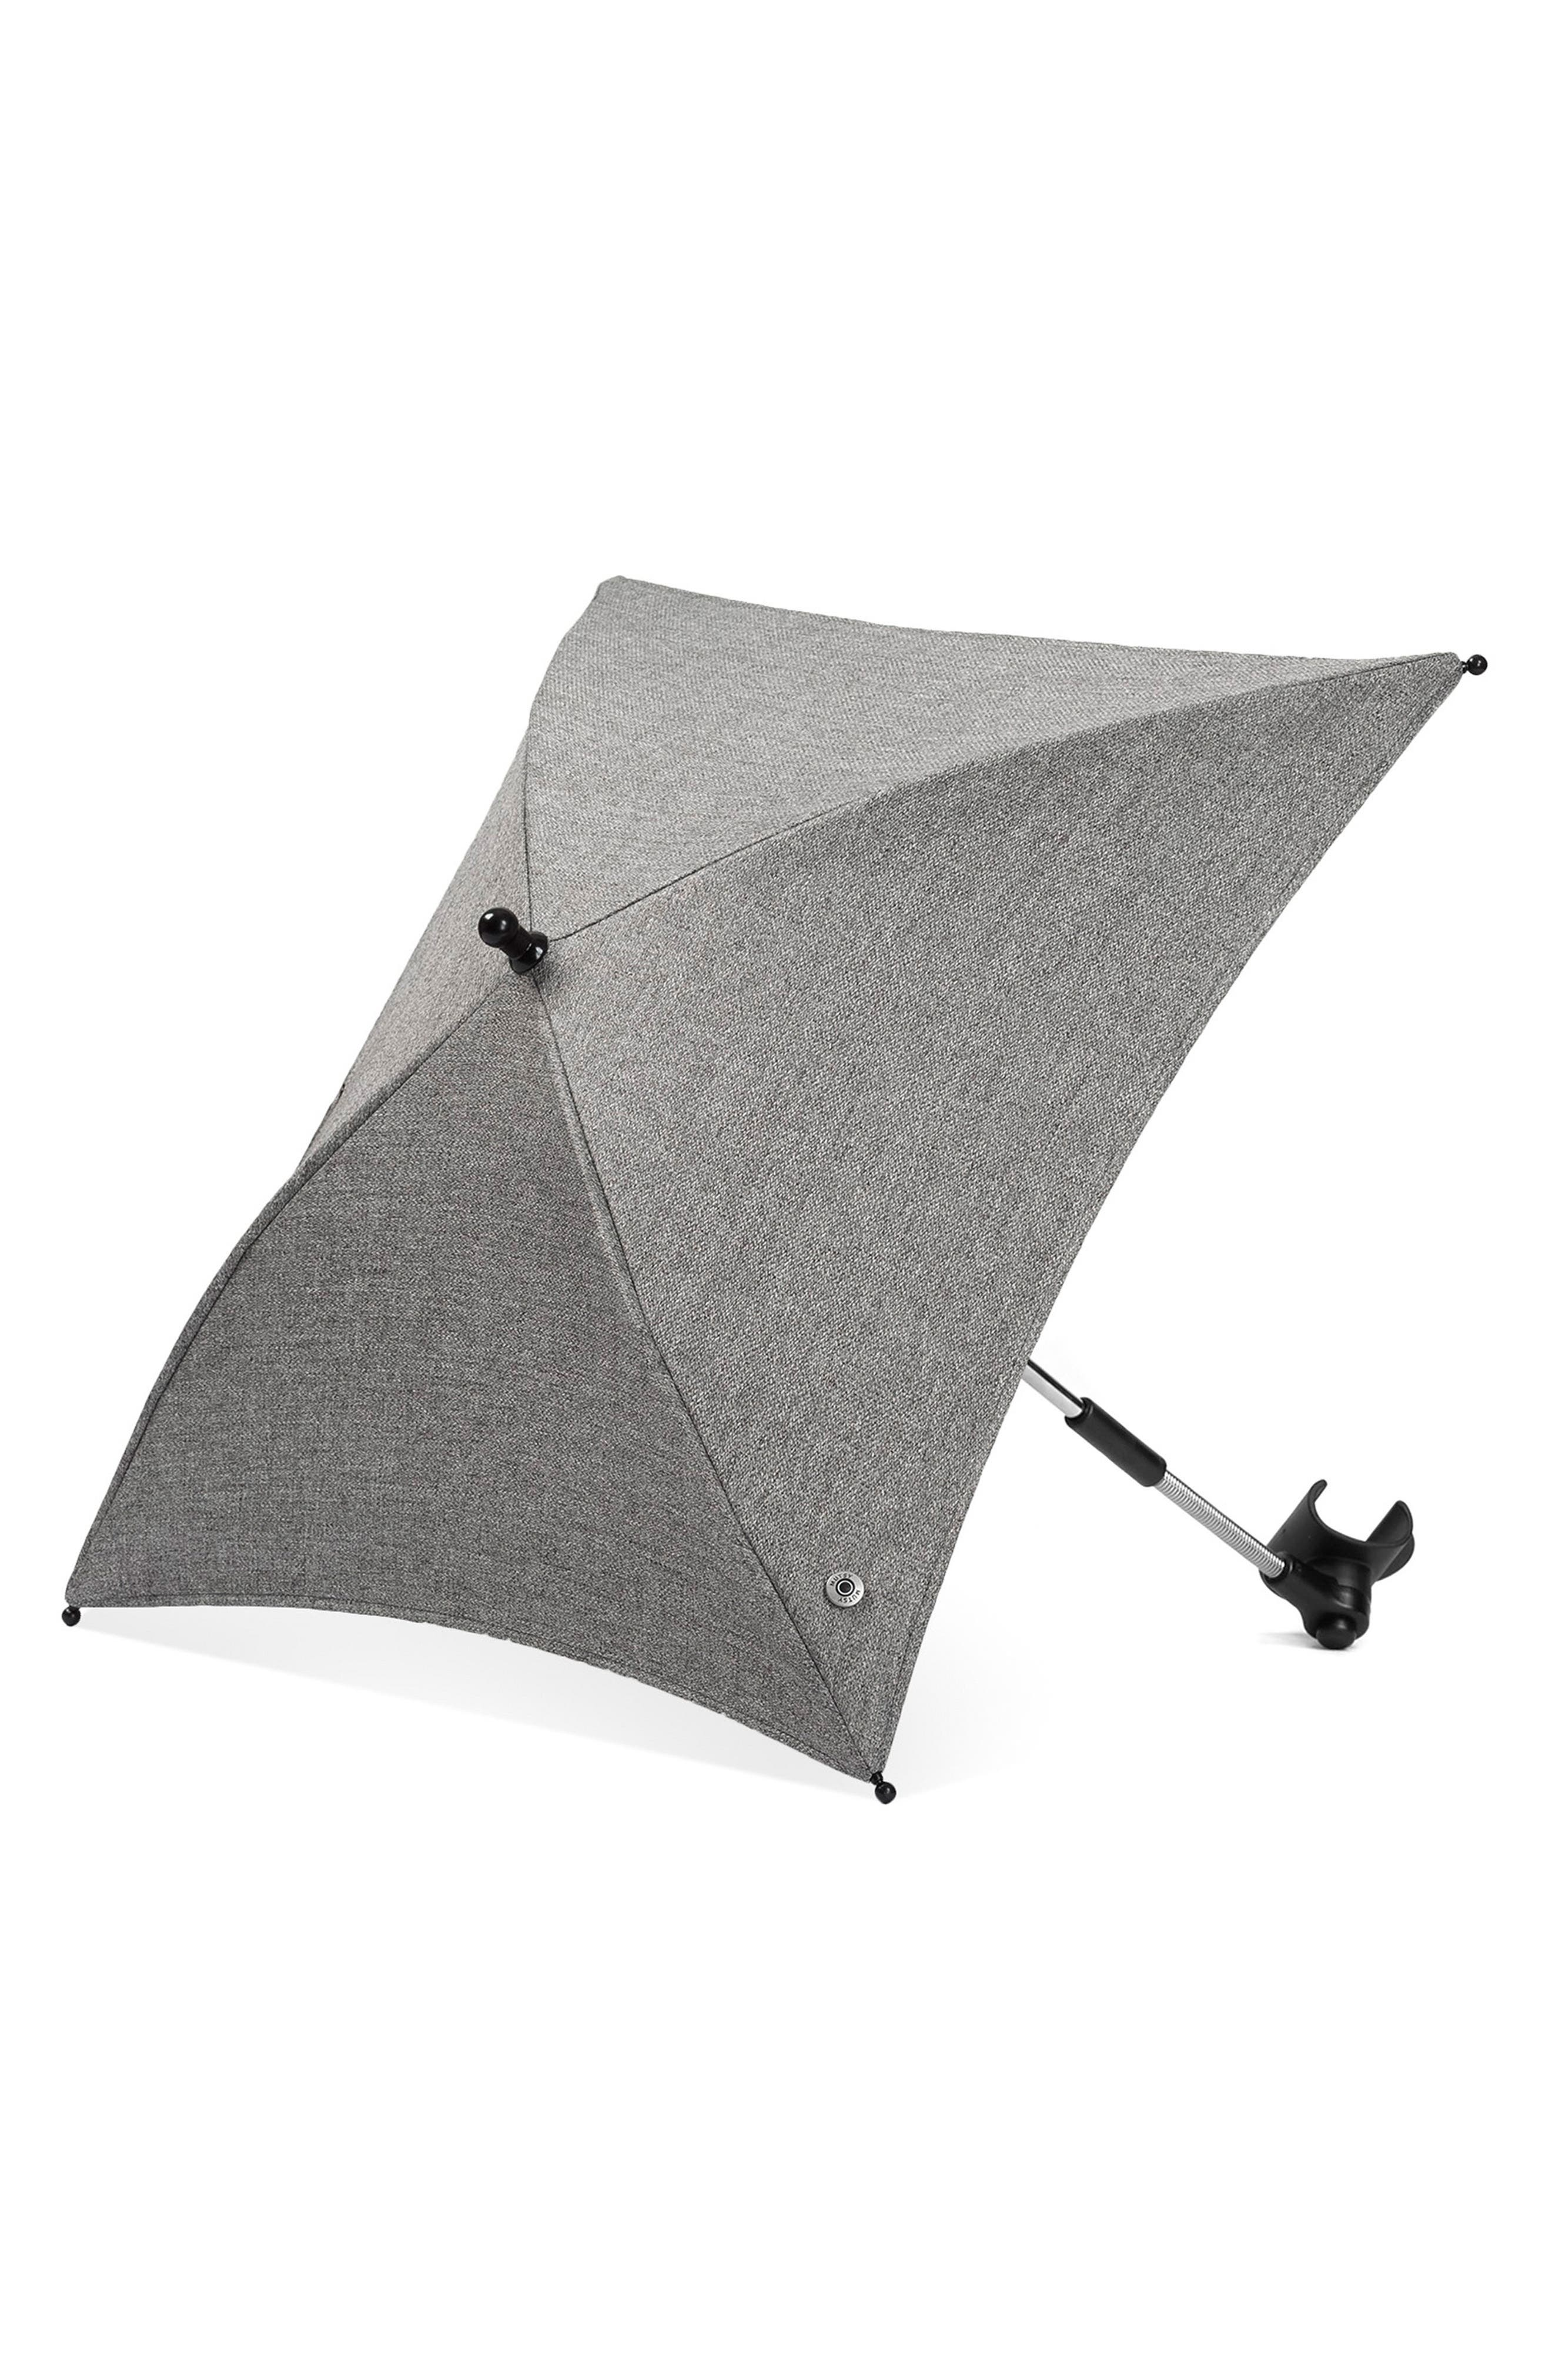 Igo - Heritage Stroller Umbrella,                             Main thumbnail 1, color,                             020